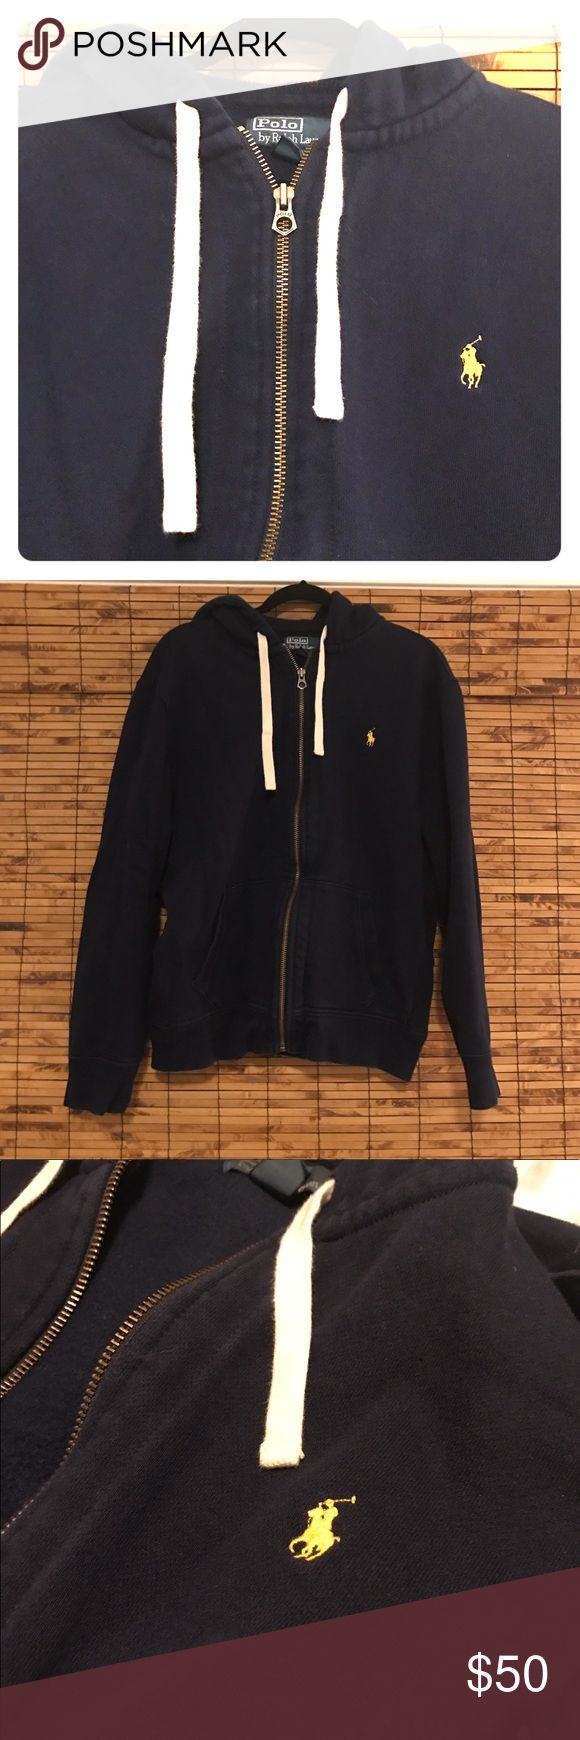 POLO Ralph Lauren navy zip up hoodie Navy zip up hoodie with bright white drawstrings and little yellow polo horse. Almost excellent condition just slight fading to navy color. Tag reads XL but I think it fits more like a L. Polo by Ralph Lauren Shirts Sweatshirts & Hoodies